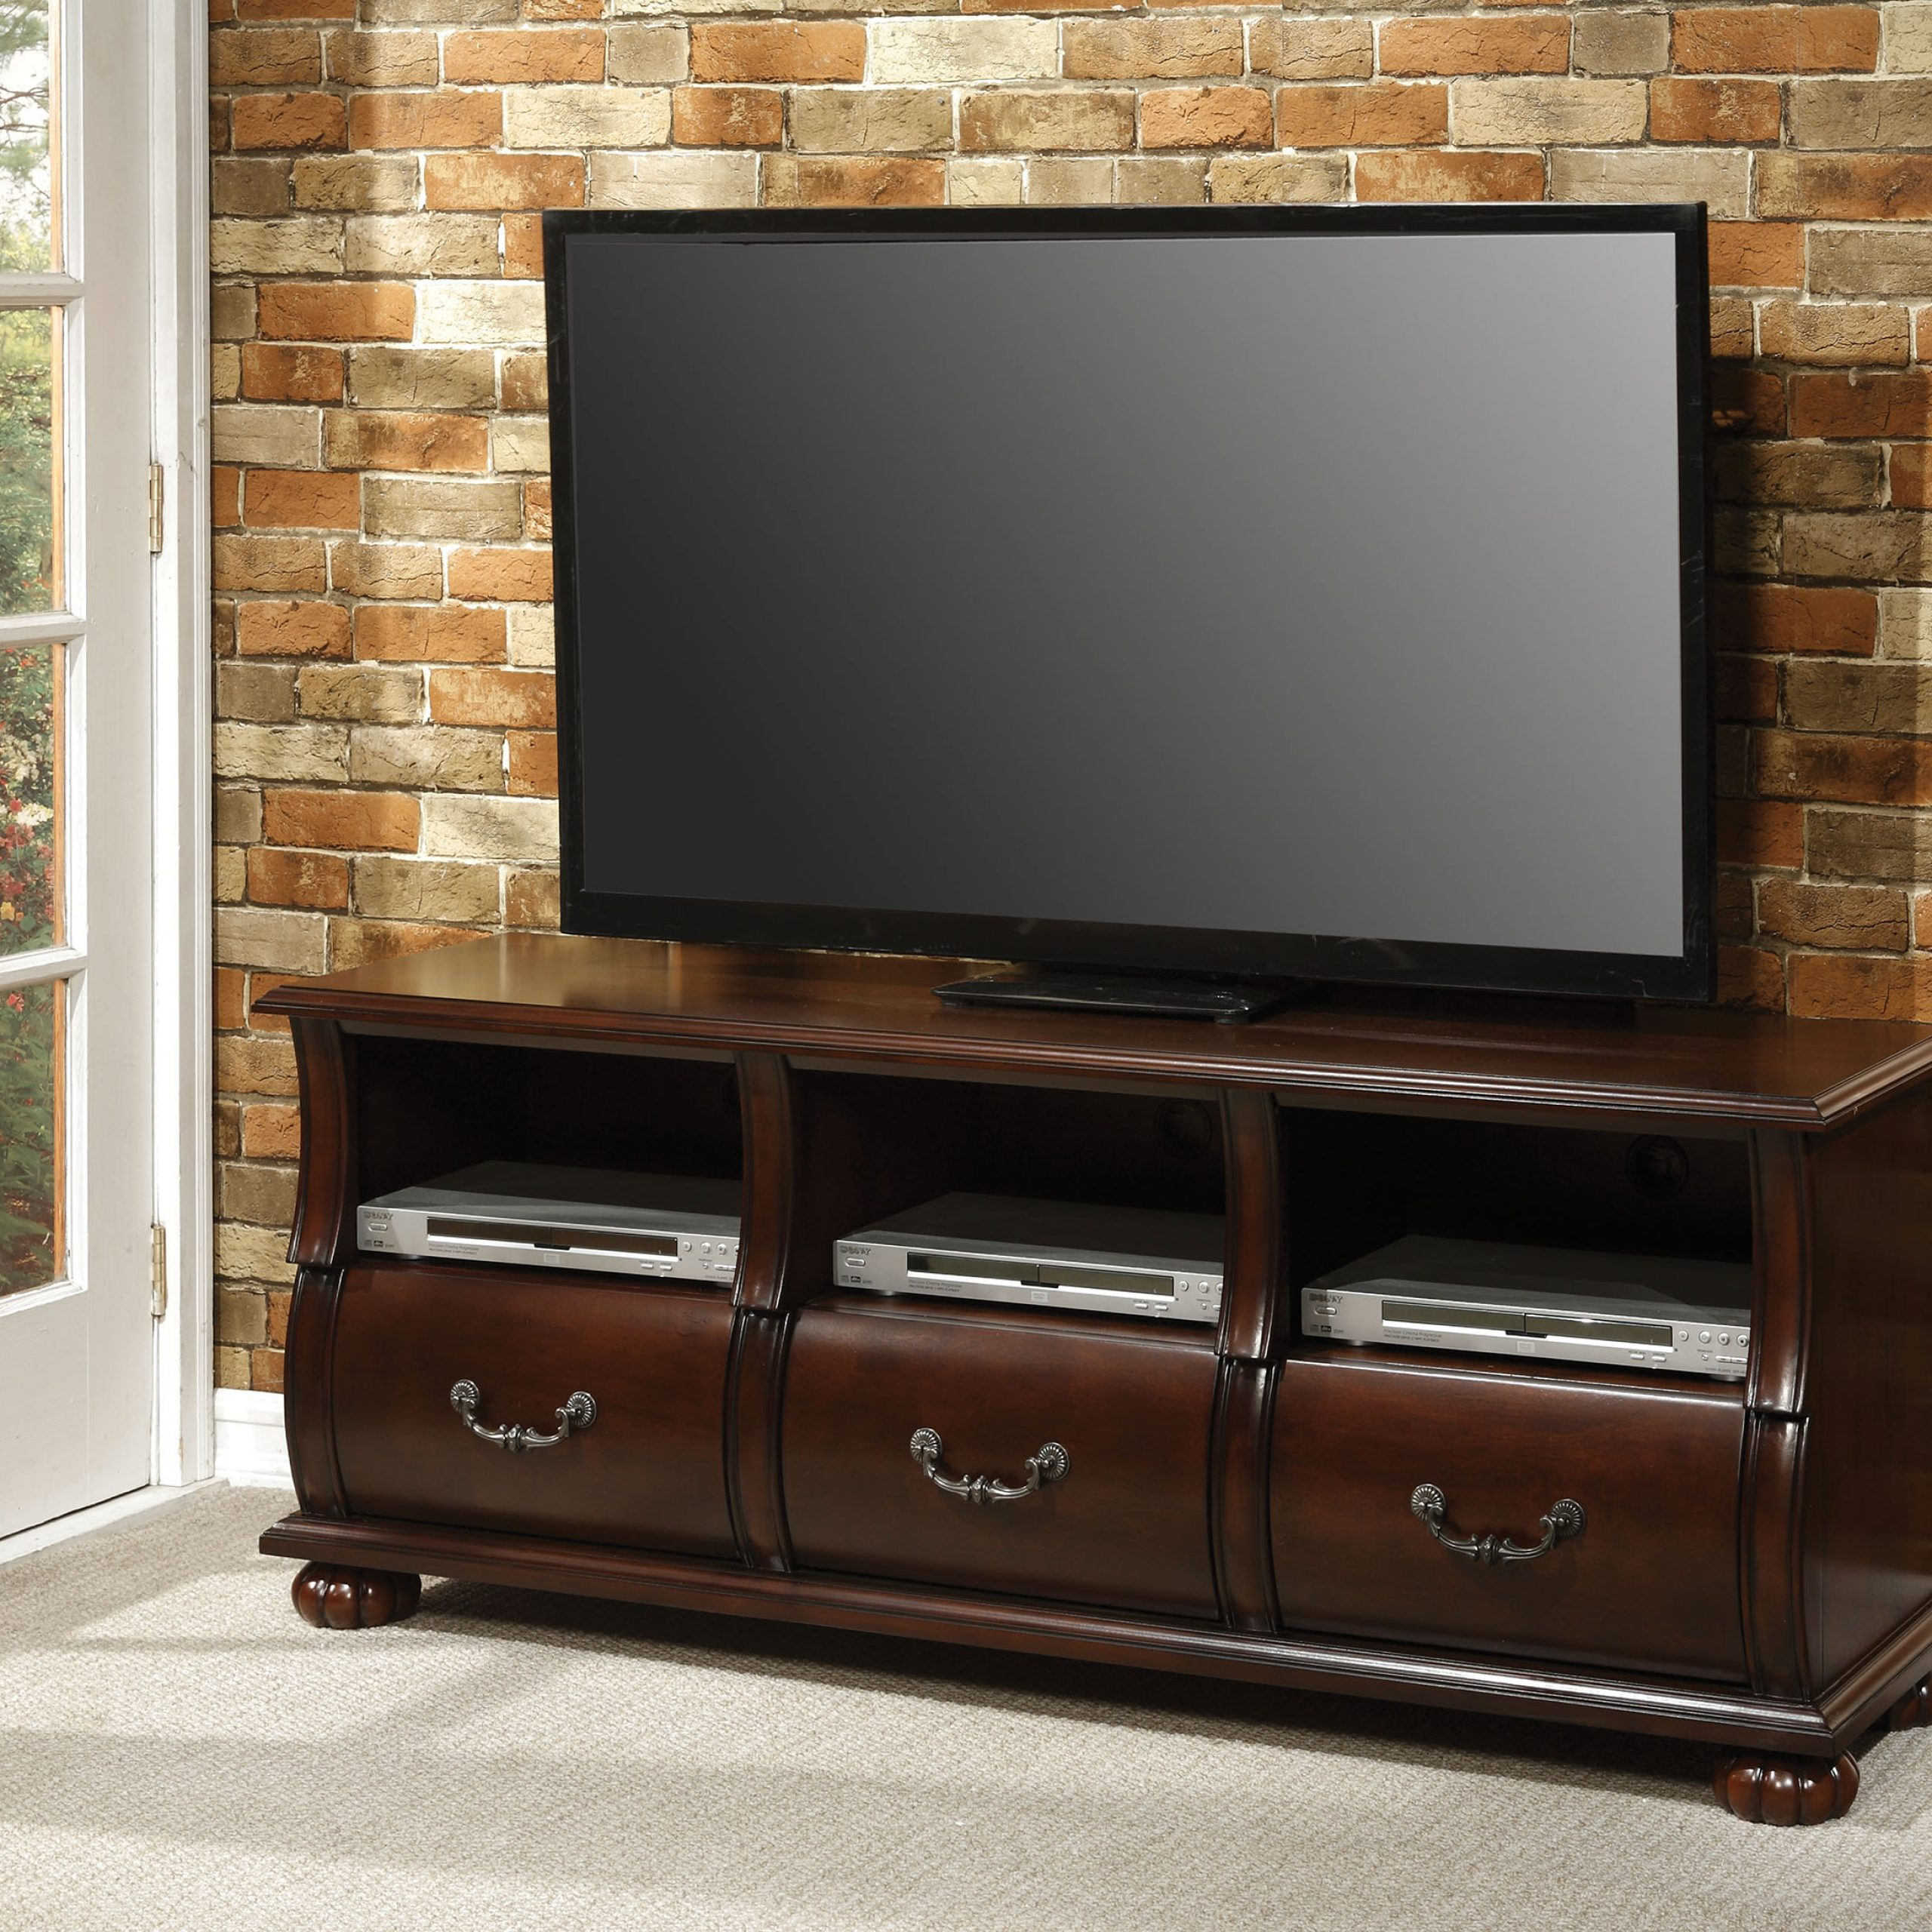 Acme Faysnow Dark Cherry Tv Stand For Flat Screen Tvs Up For Easel Tv Stands For Flat Screens (View 1 of 15)